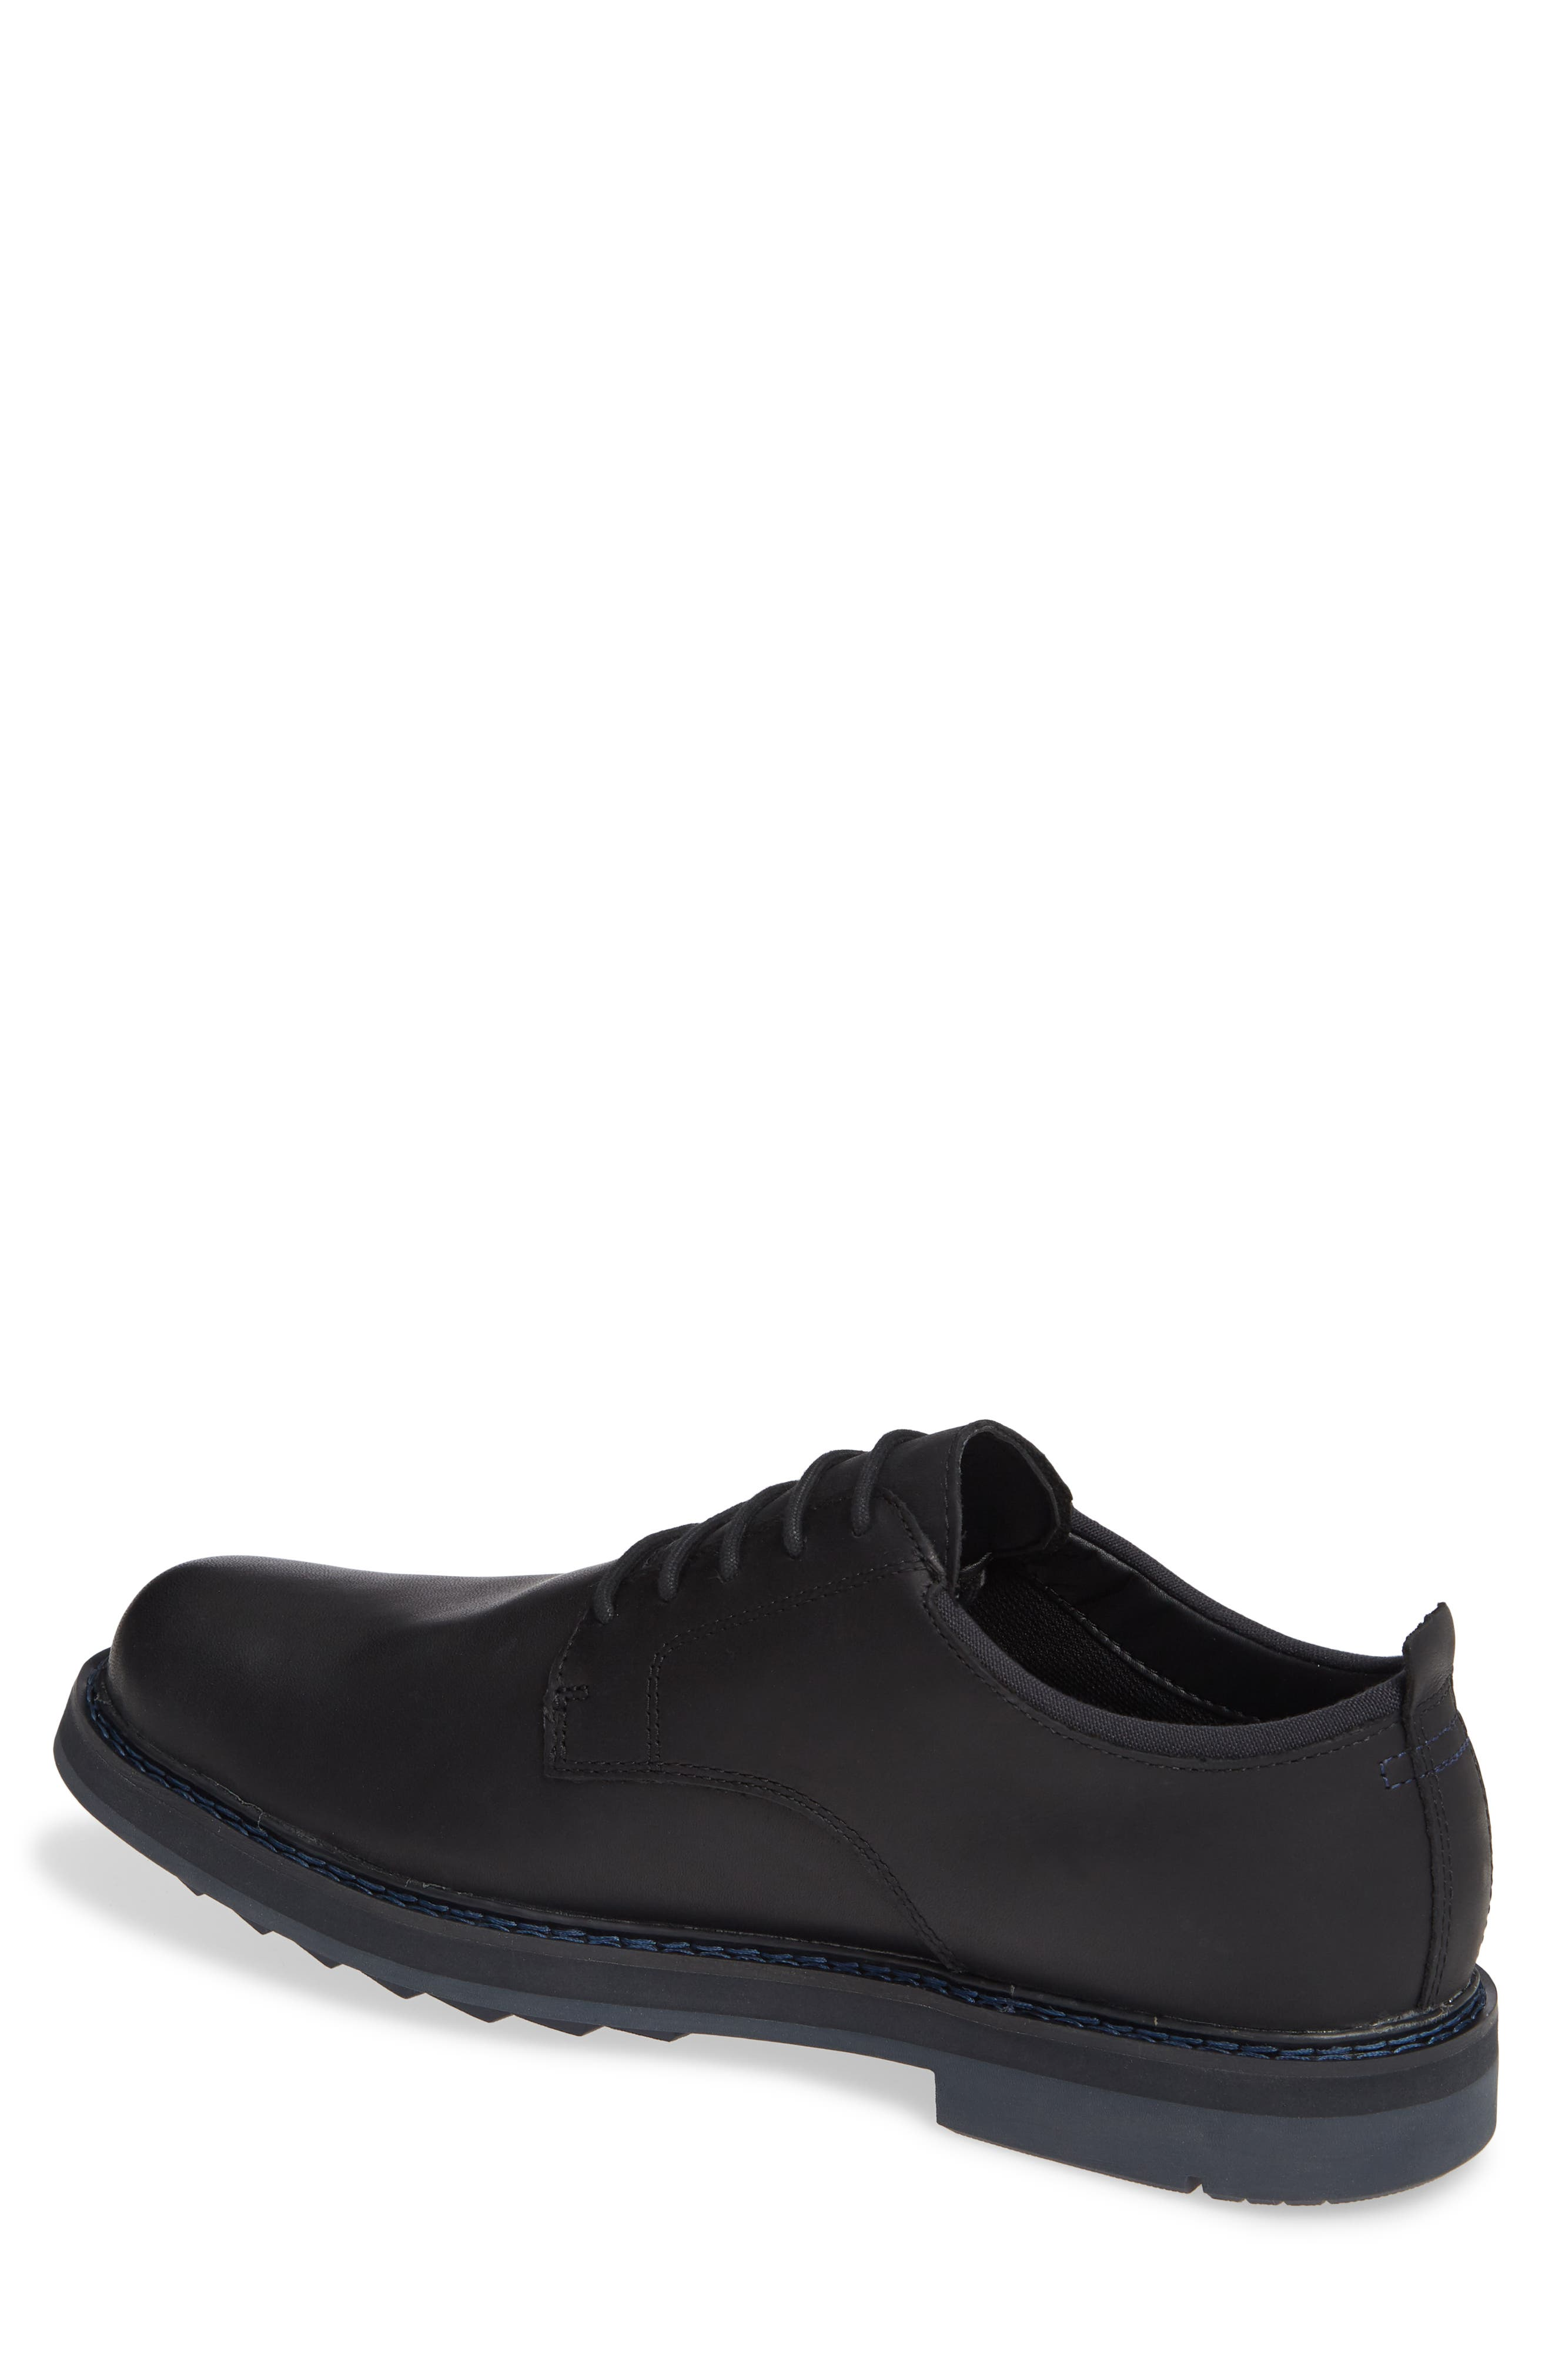 TIMBERLAND, Squall Canyon Waterproof Plain Toe Derby, Alternate thumbnail 2, color, BLACK LEATHER